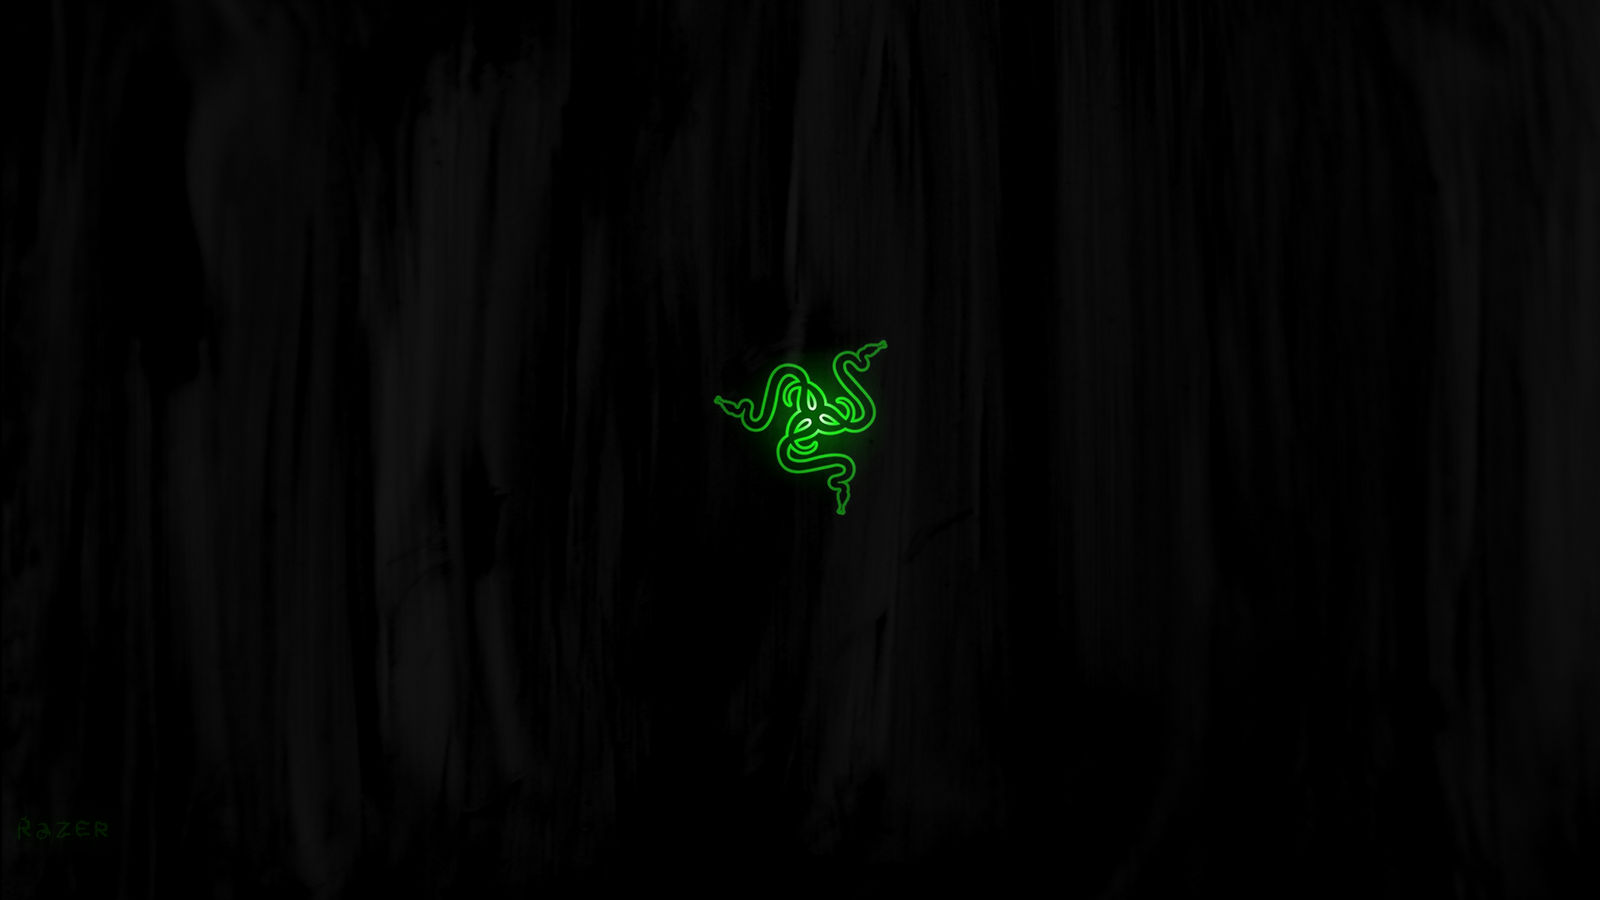 ... Razer wallpaper - EmaSch design by EmaSch-Design